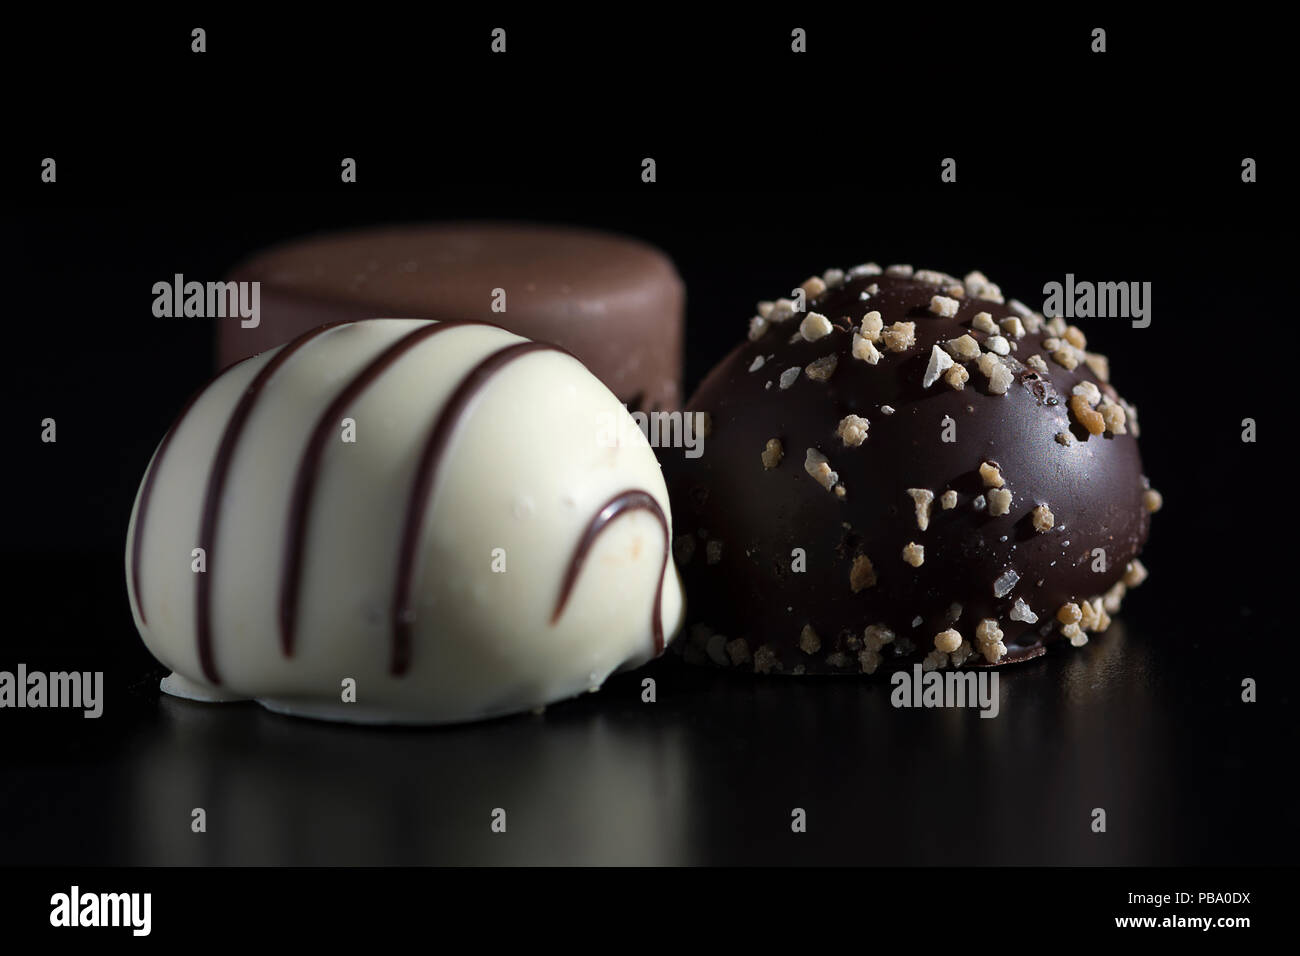 Close up of three chocolate bonbons, white, dark and milk chocolate. Sweet, calorie-rich and energy-rich food with unhealthy and fattening qualities - Stock Image